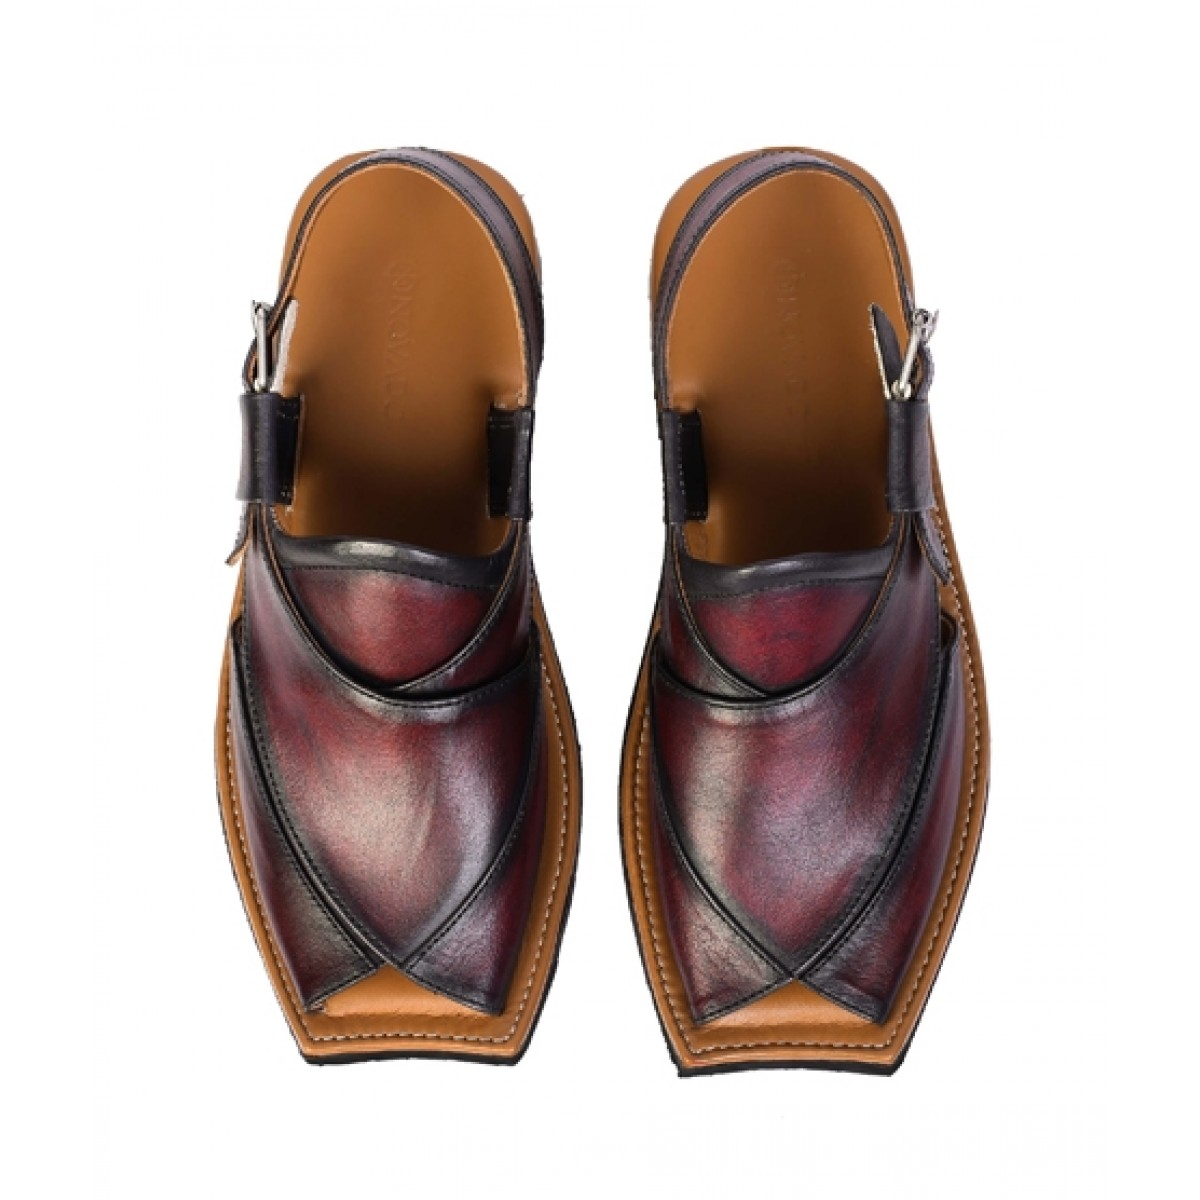 NOVADO Leather Peshawari Sandal For Men Cherry Red (0023)